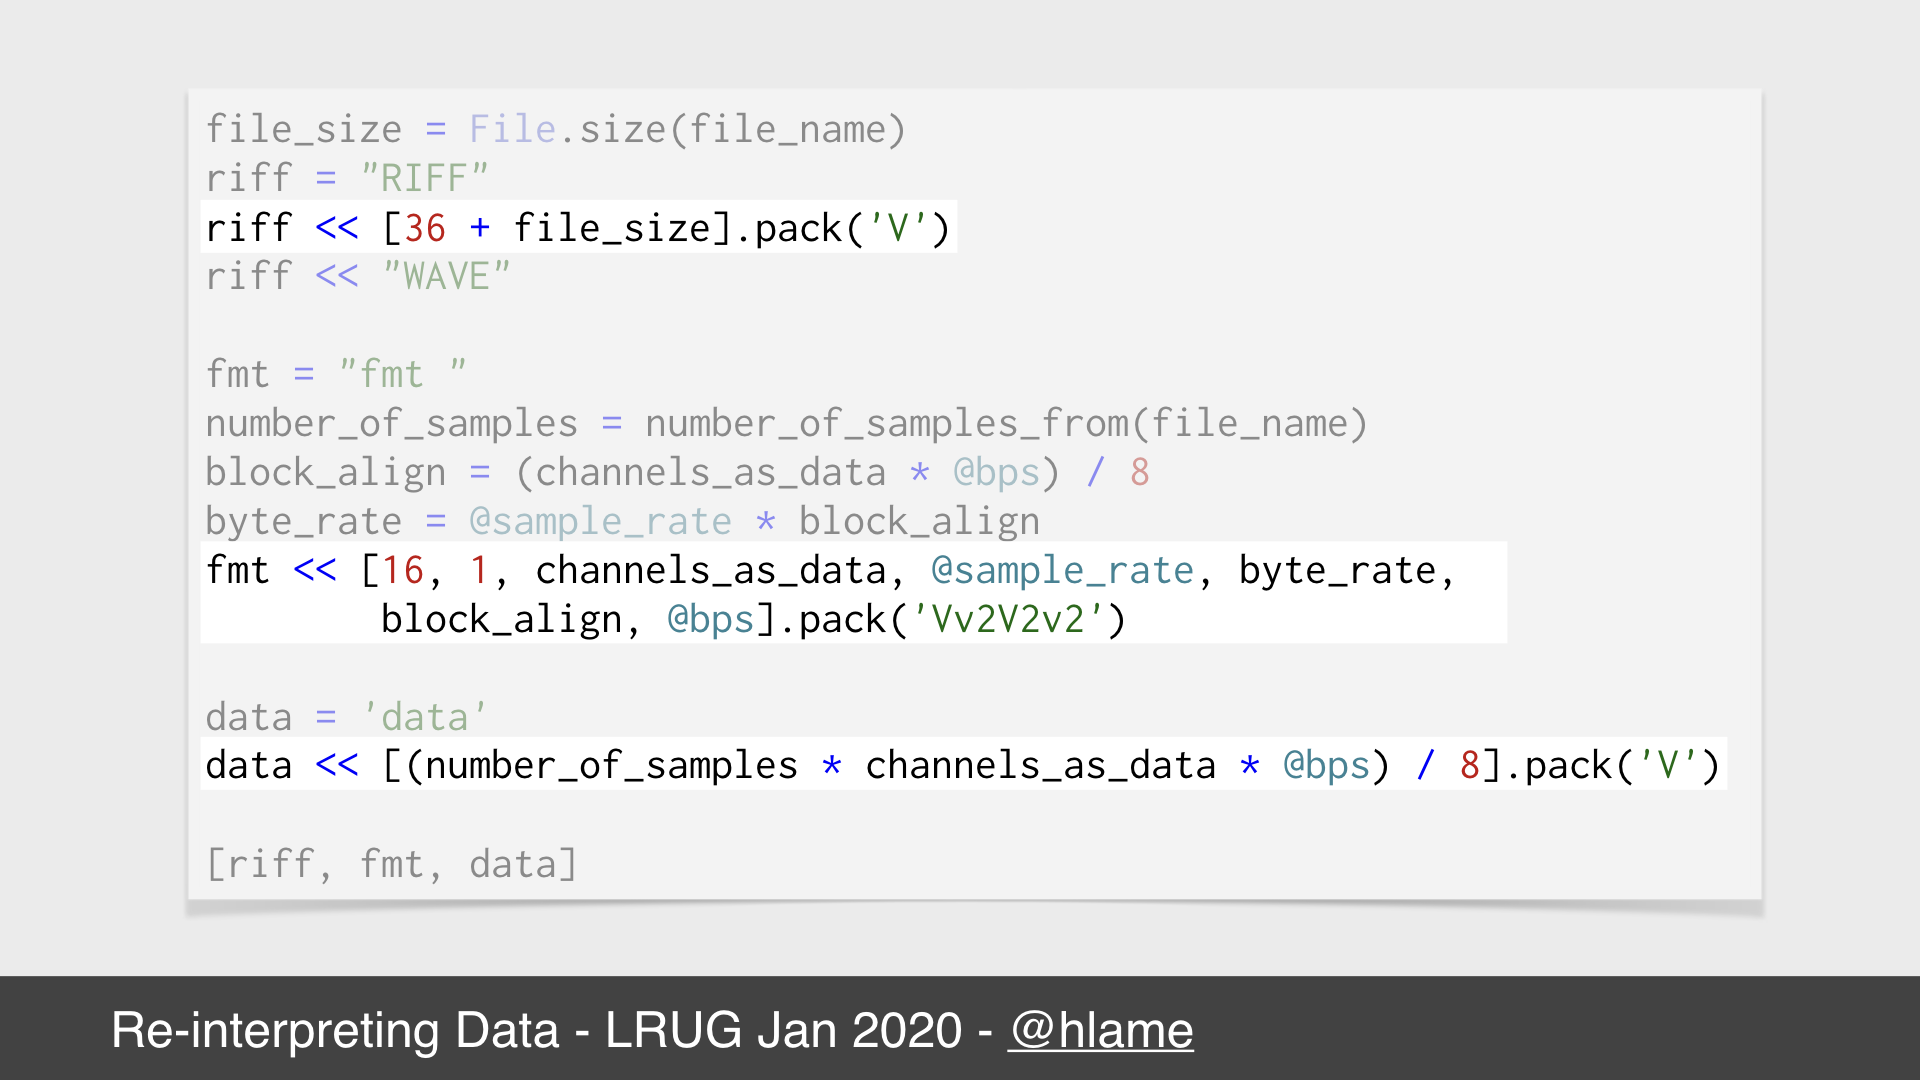 Snippet of code showing how we can construct a wave file header in ruby, highlighting the calls to the `pack` method.  source: https://github.com/h-lame/stegosaurus/blob/d05db3eecd0d328c9de7886dcedbb16b189b3c5d/lib/stegosaurus/waves.rb#L76-L97